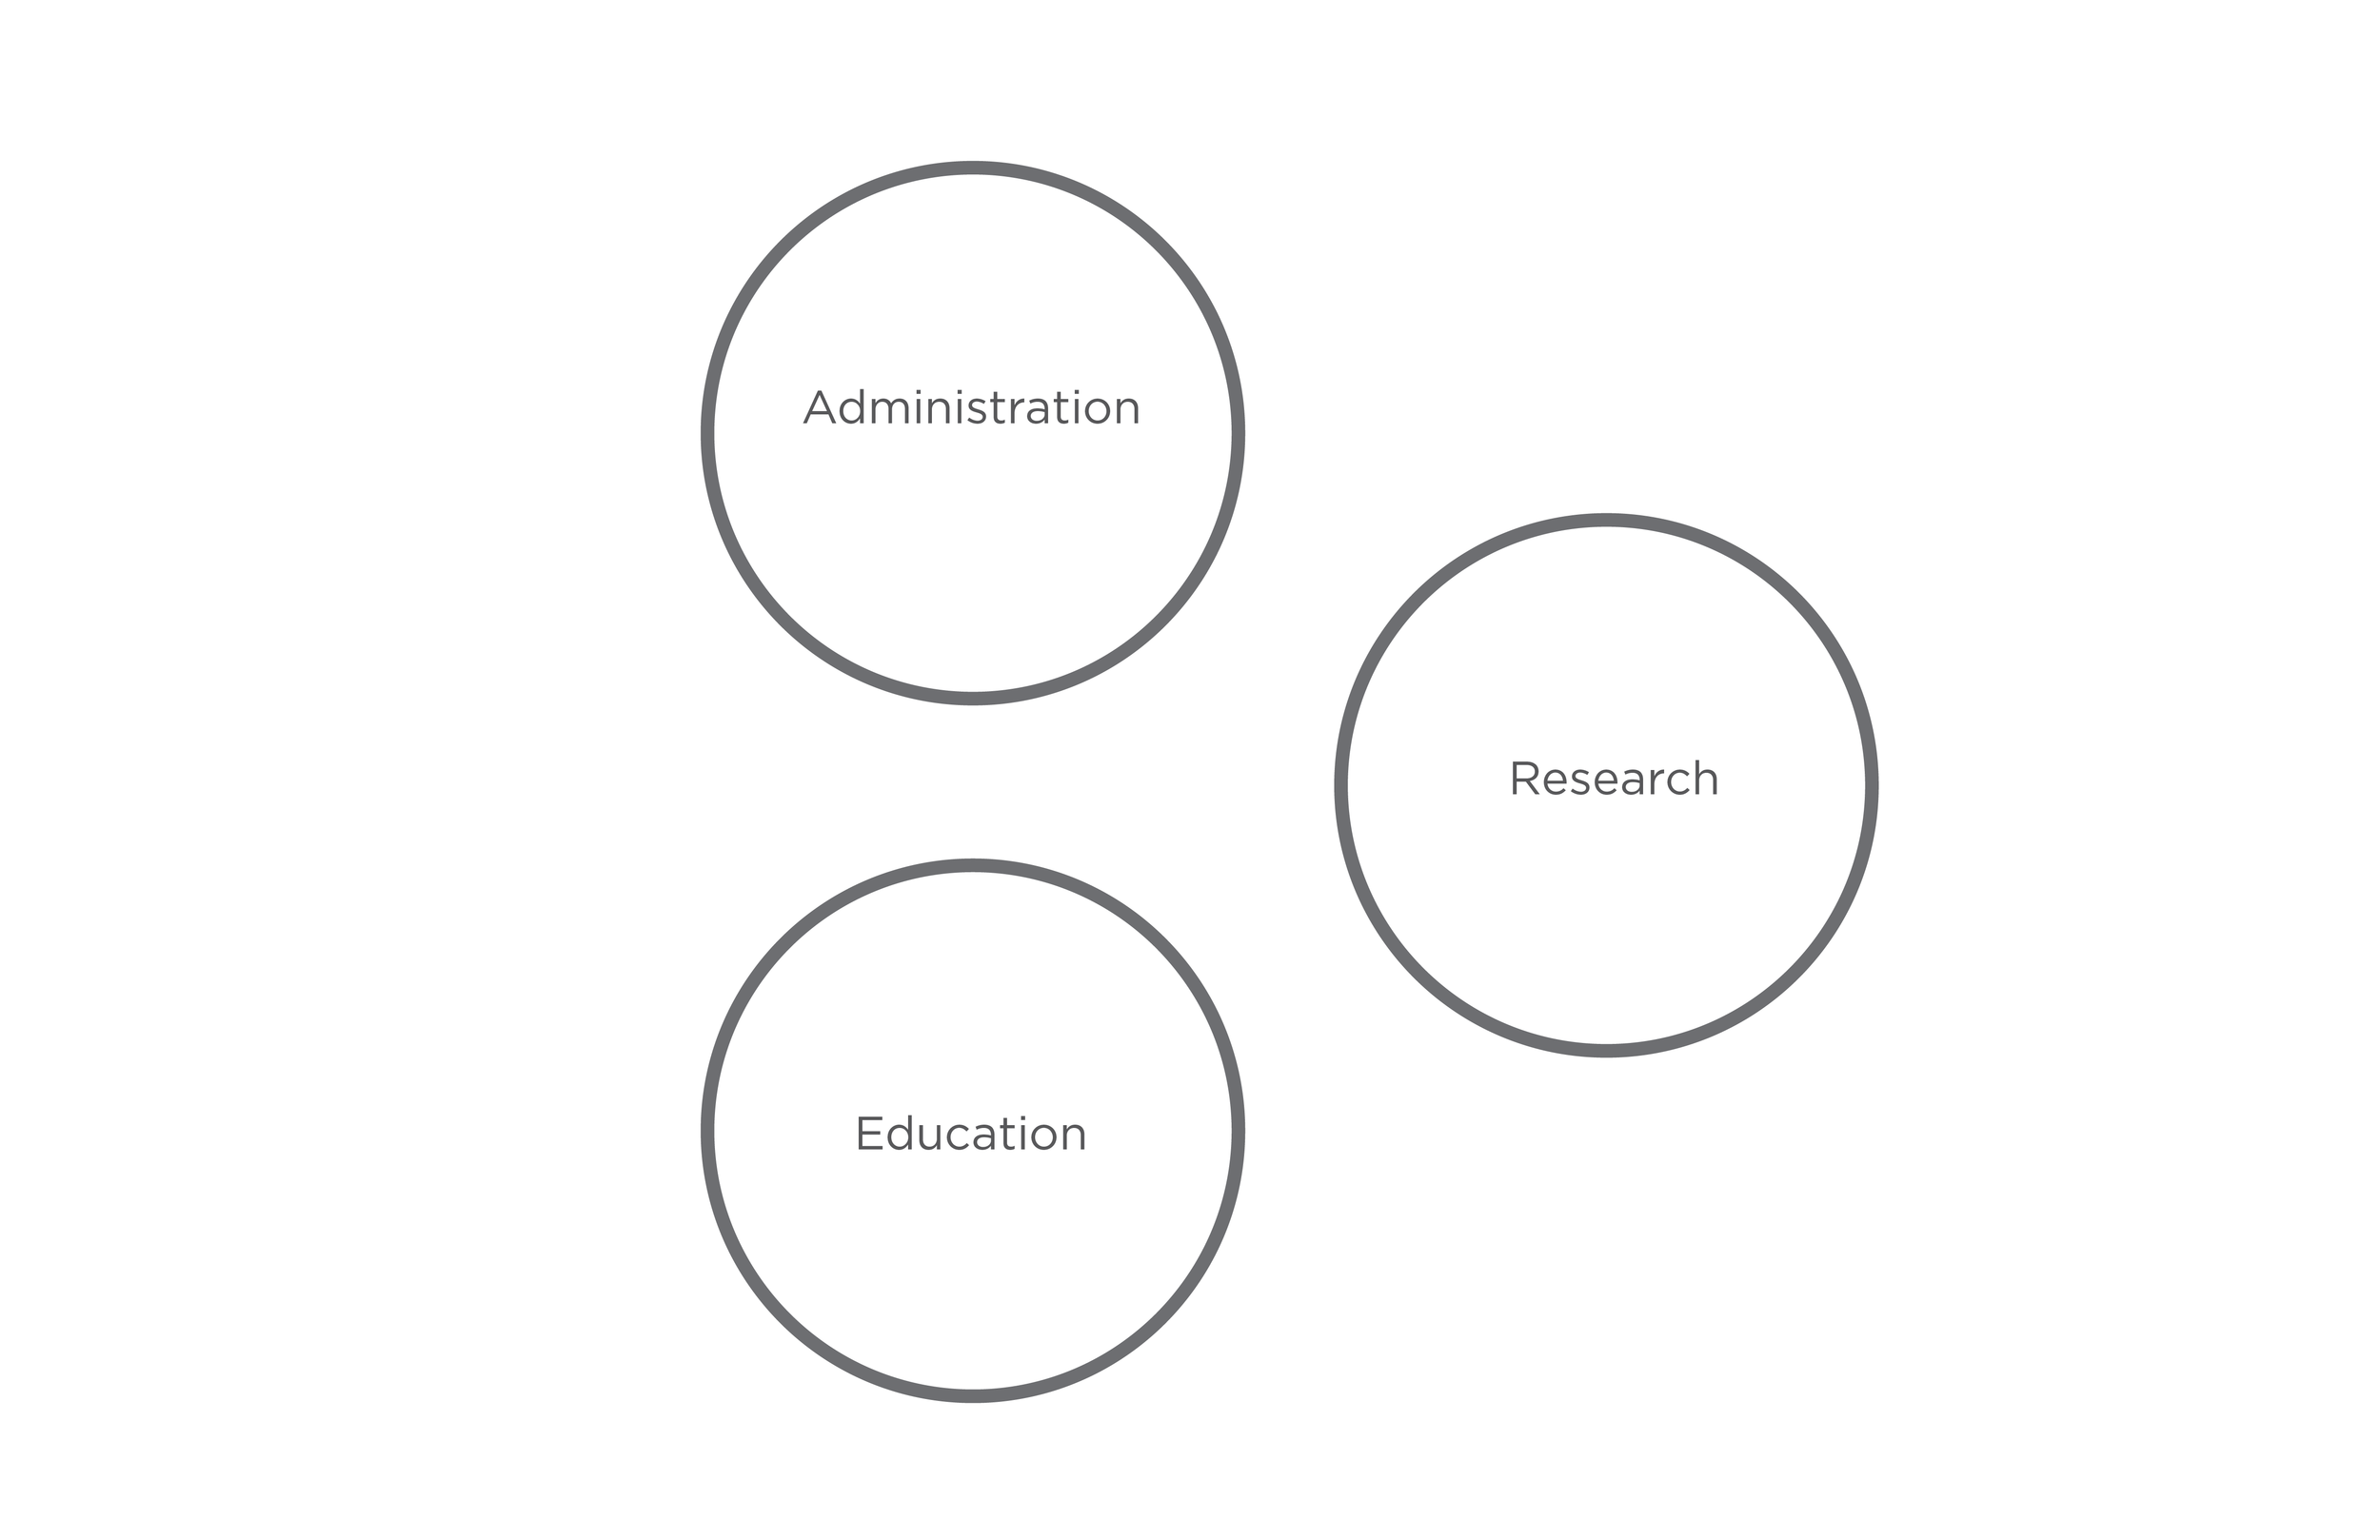 sustainable org diagrams-01.png